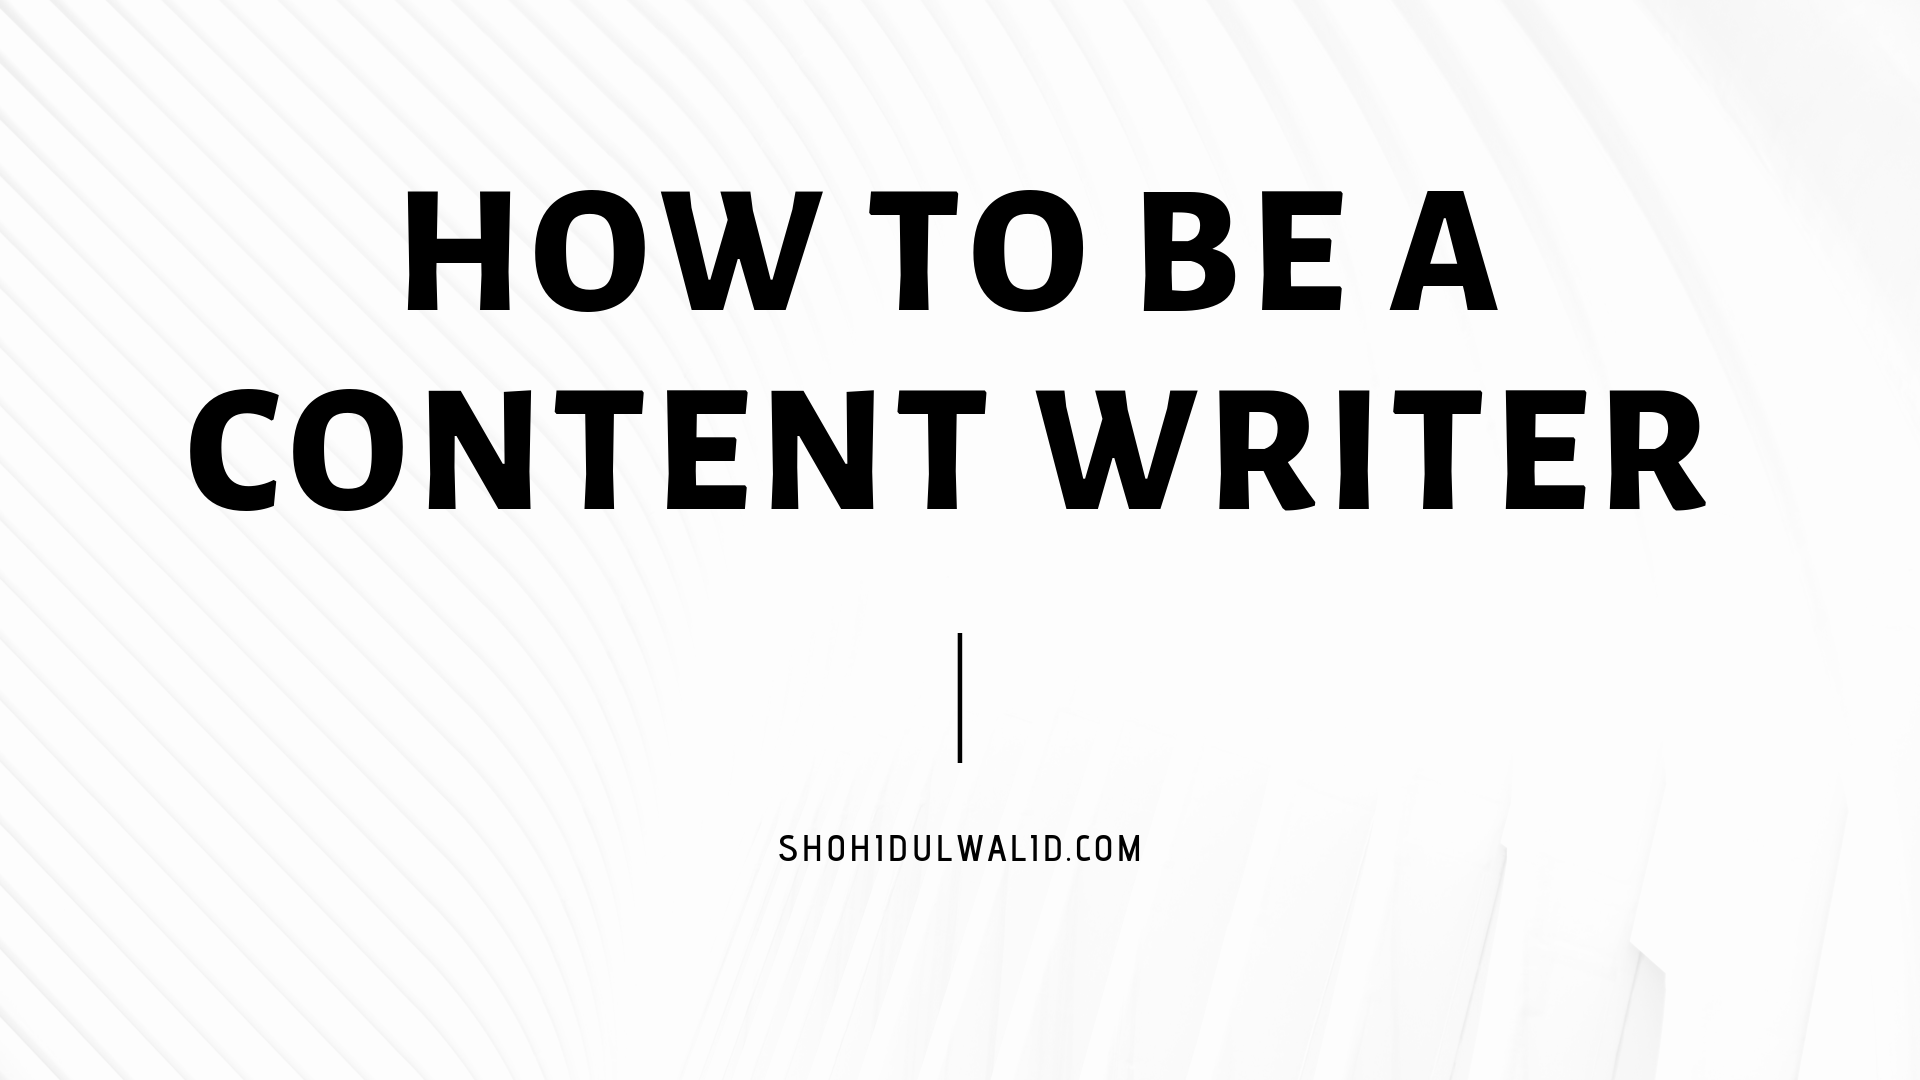 HOW TO BE A CONTENT WRITER